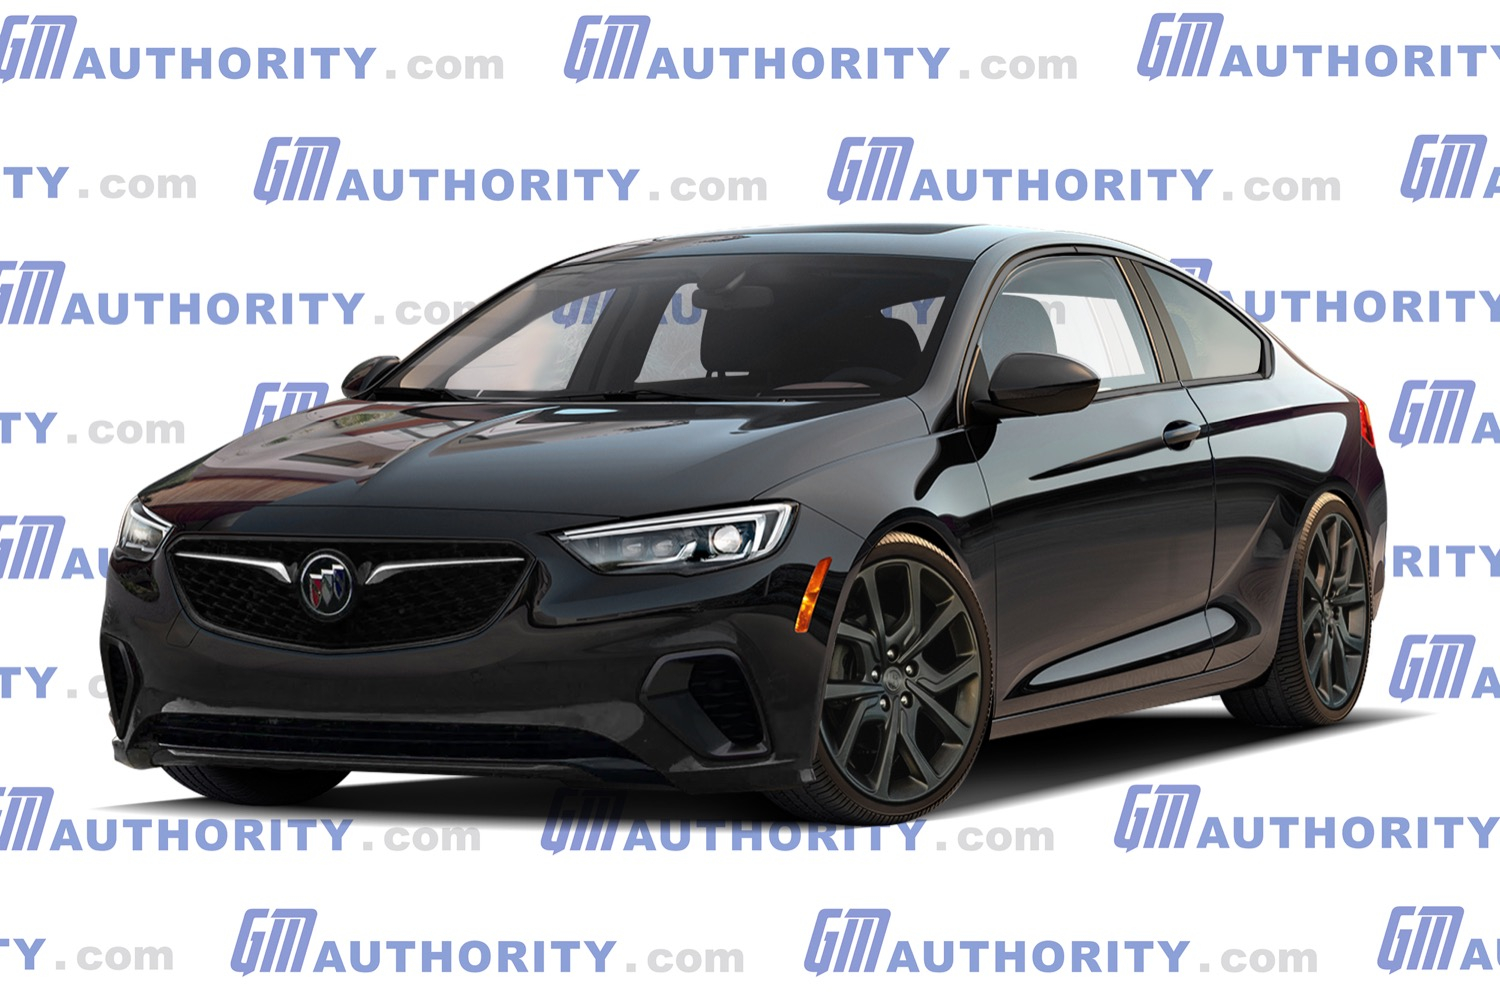 Modern Buick Regal Gnx Rendered | Gm Authority New 2022 Buick Regal Production, Pictures, Price